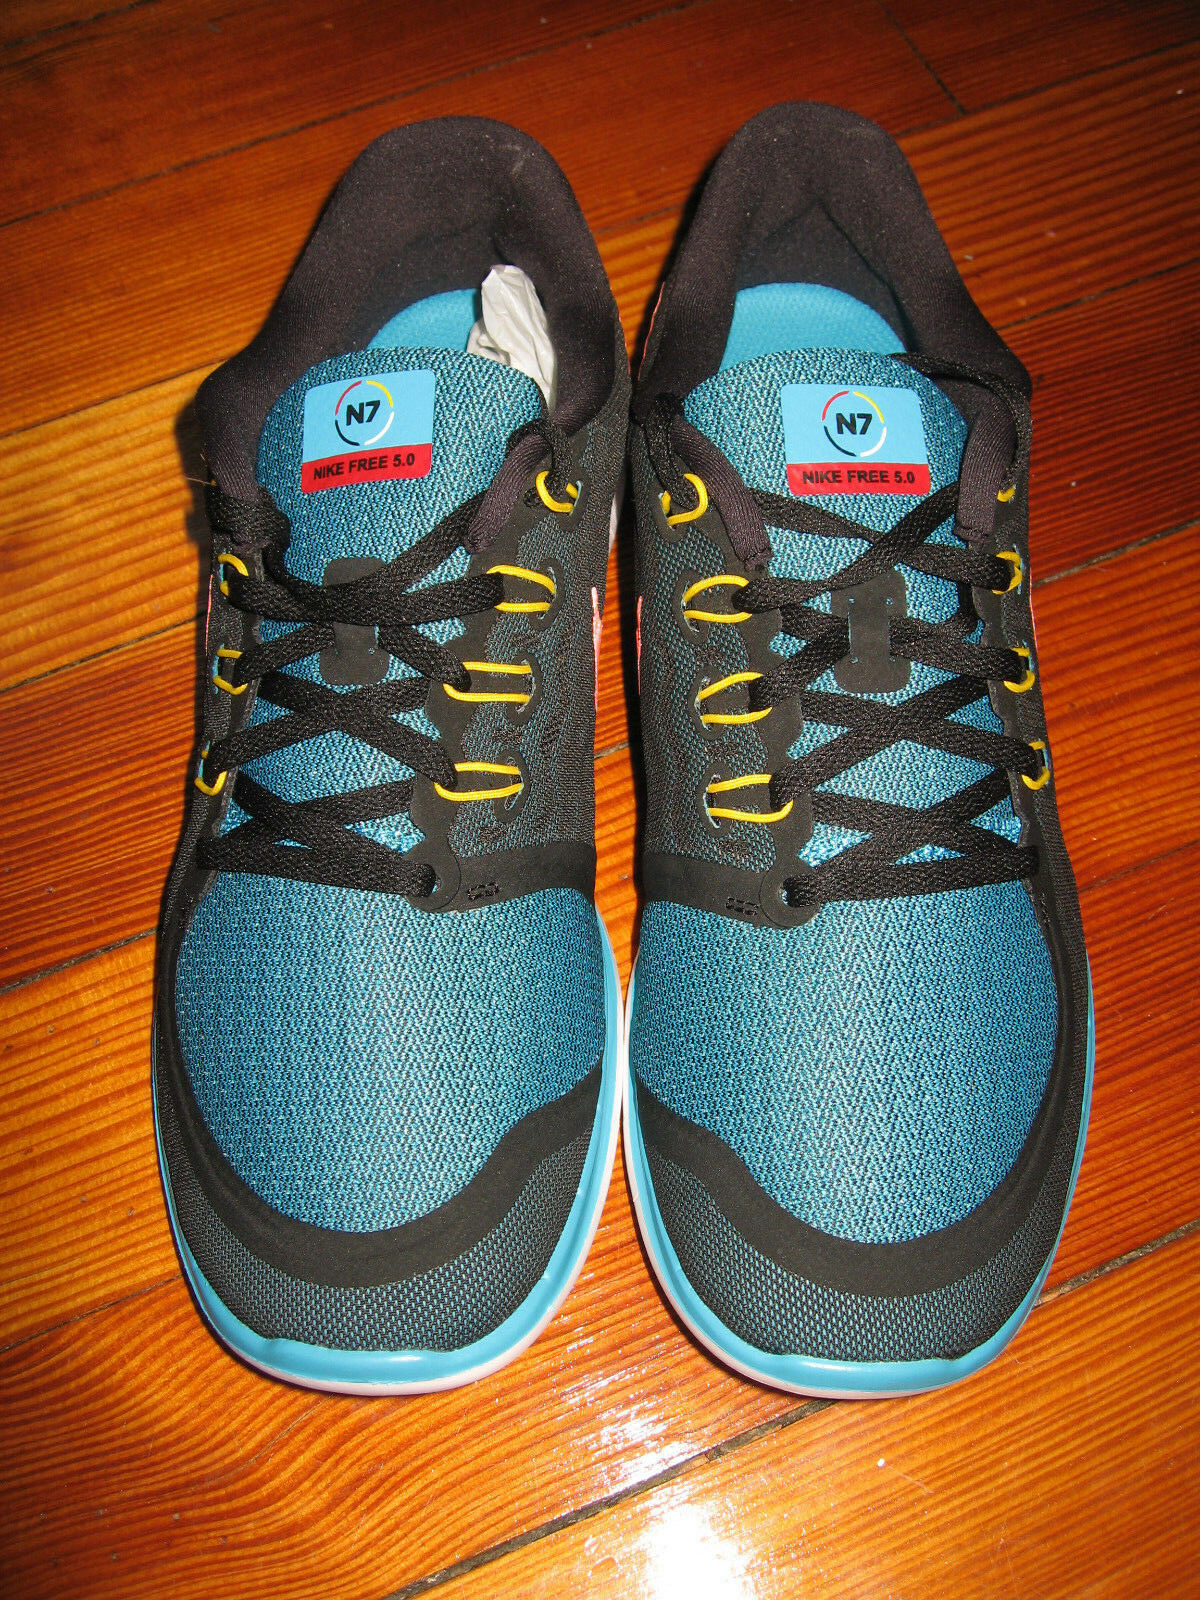 New Mens NIKE FREE 5.0 N7 Collection Casual Running Sneakers Size 10.5